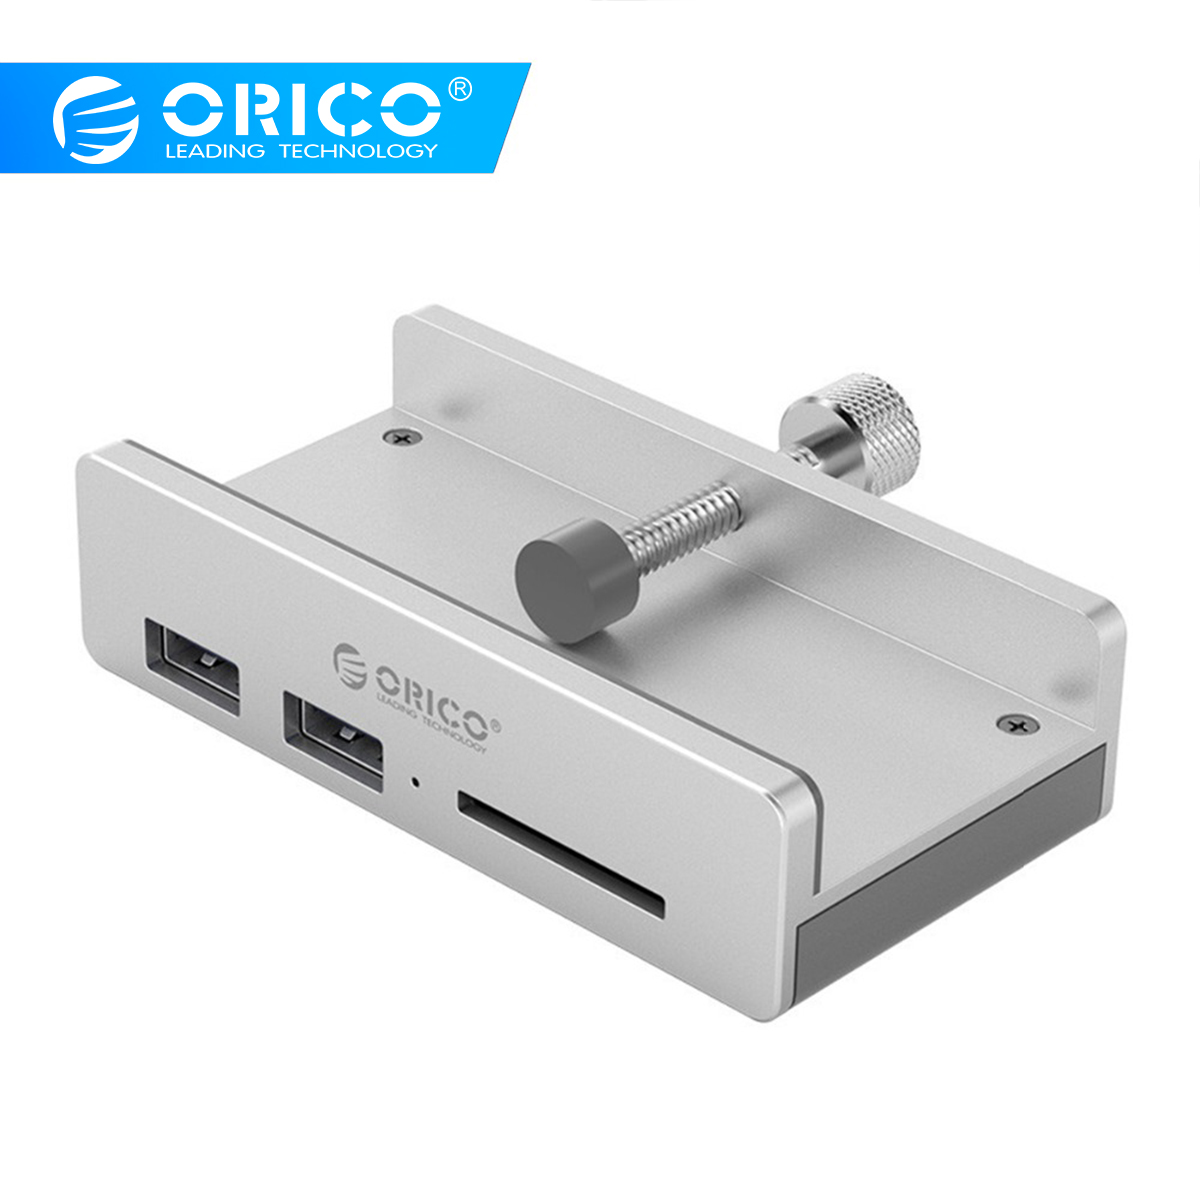 ORICO Clip Design USB 3.0 HUB With Card Reader Aluminum Alloy Clip-type 3 Ports High Speed Splitter Hub For Desktop Laptop